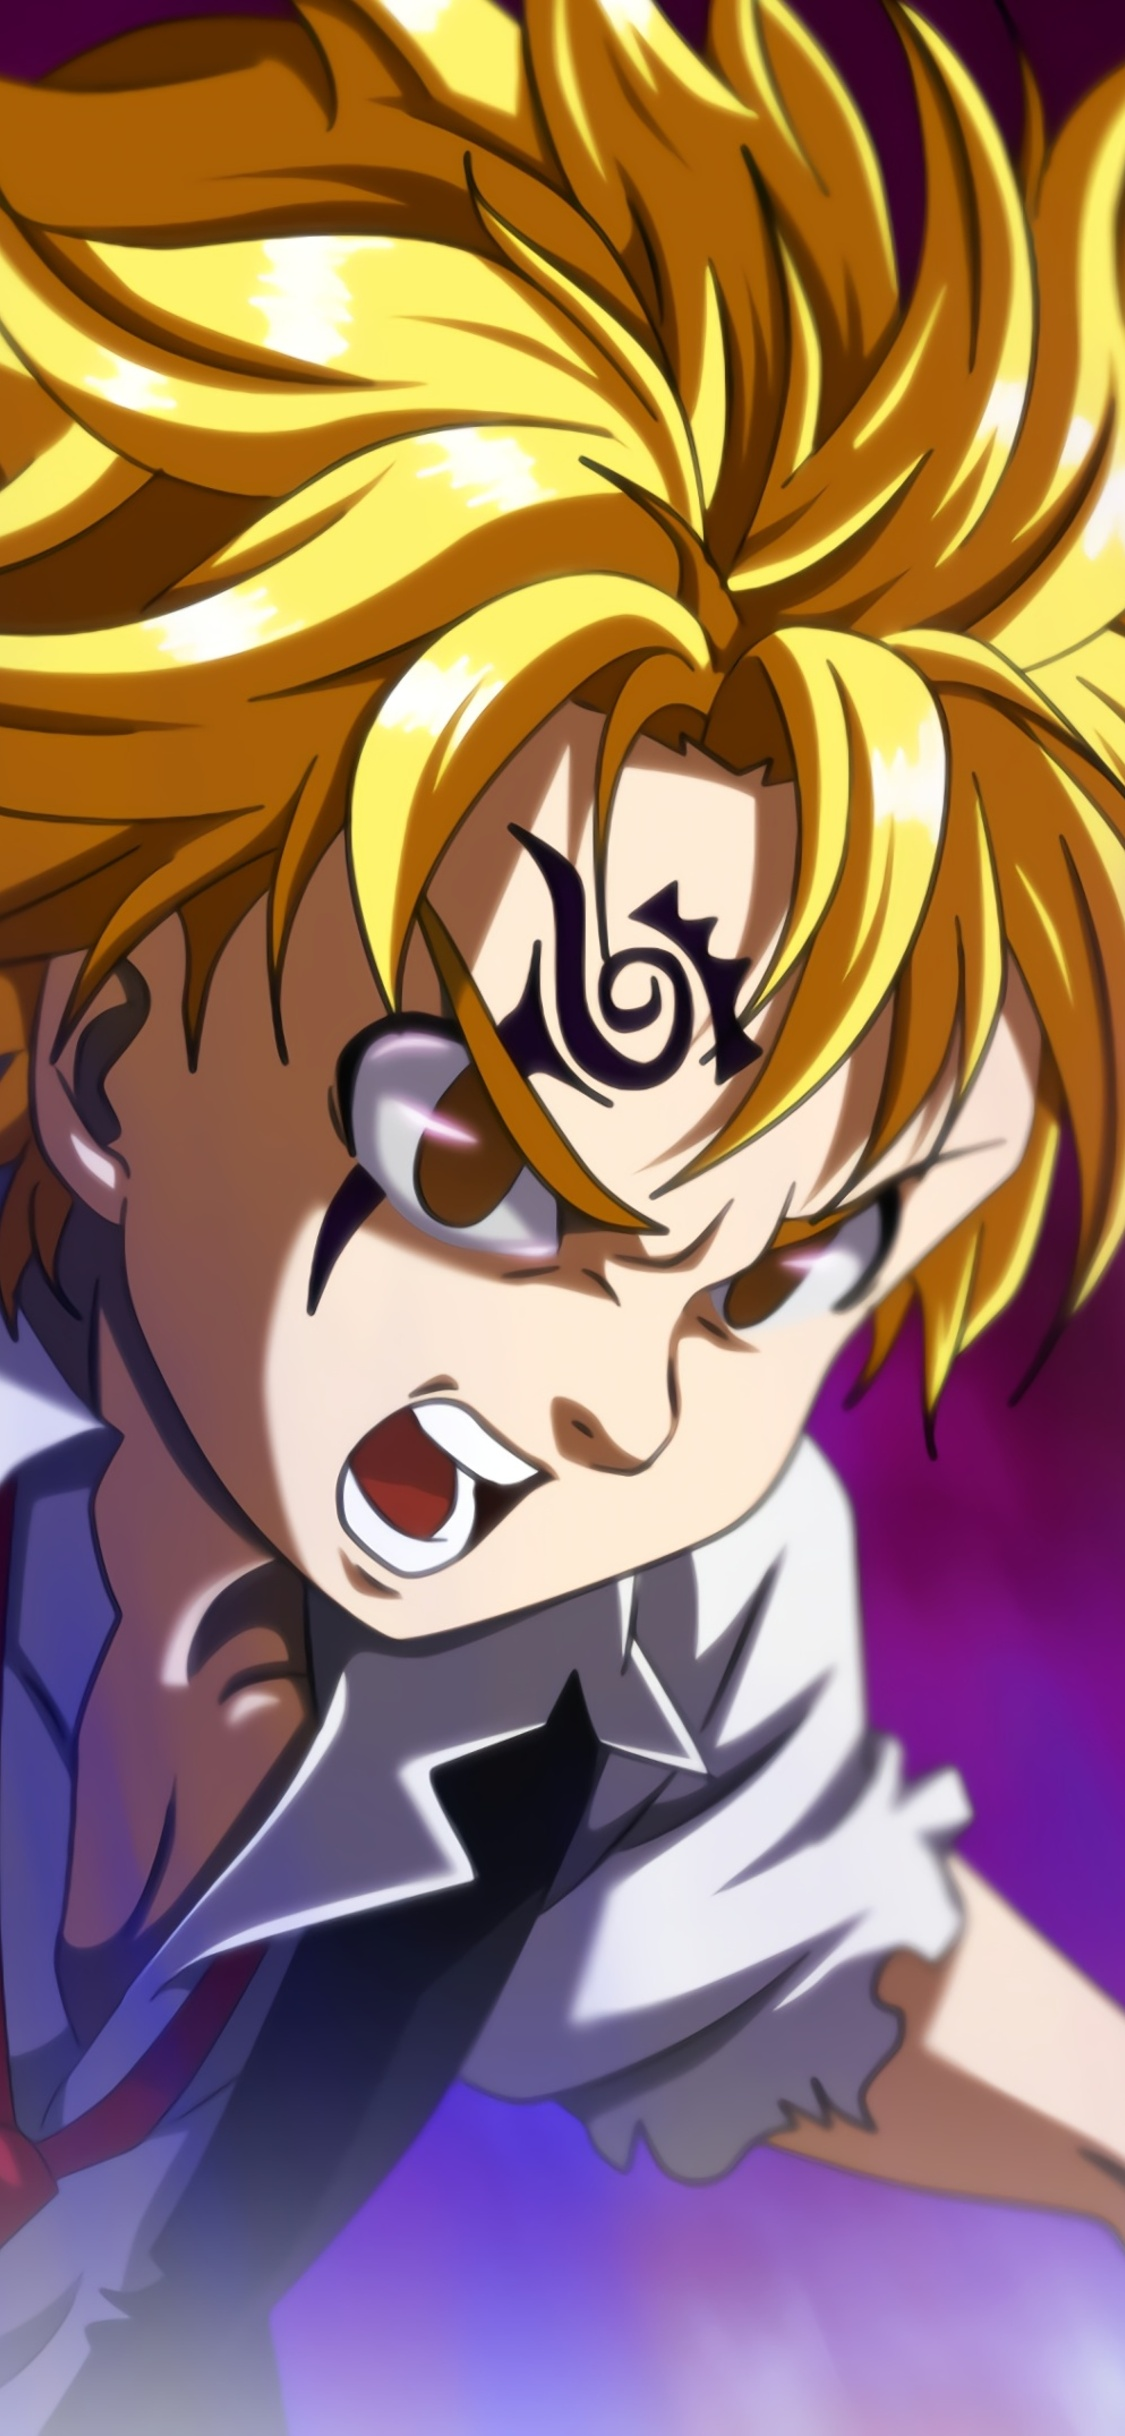 1125x2436 Meliodas The Seven Deadly Sins 4k Iphone Xs Iphone 10